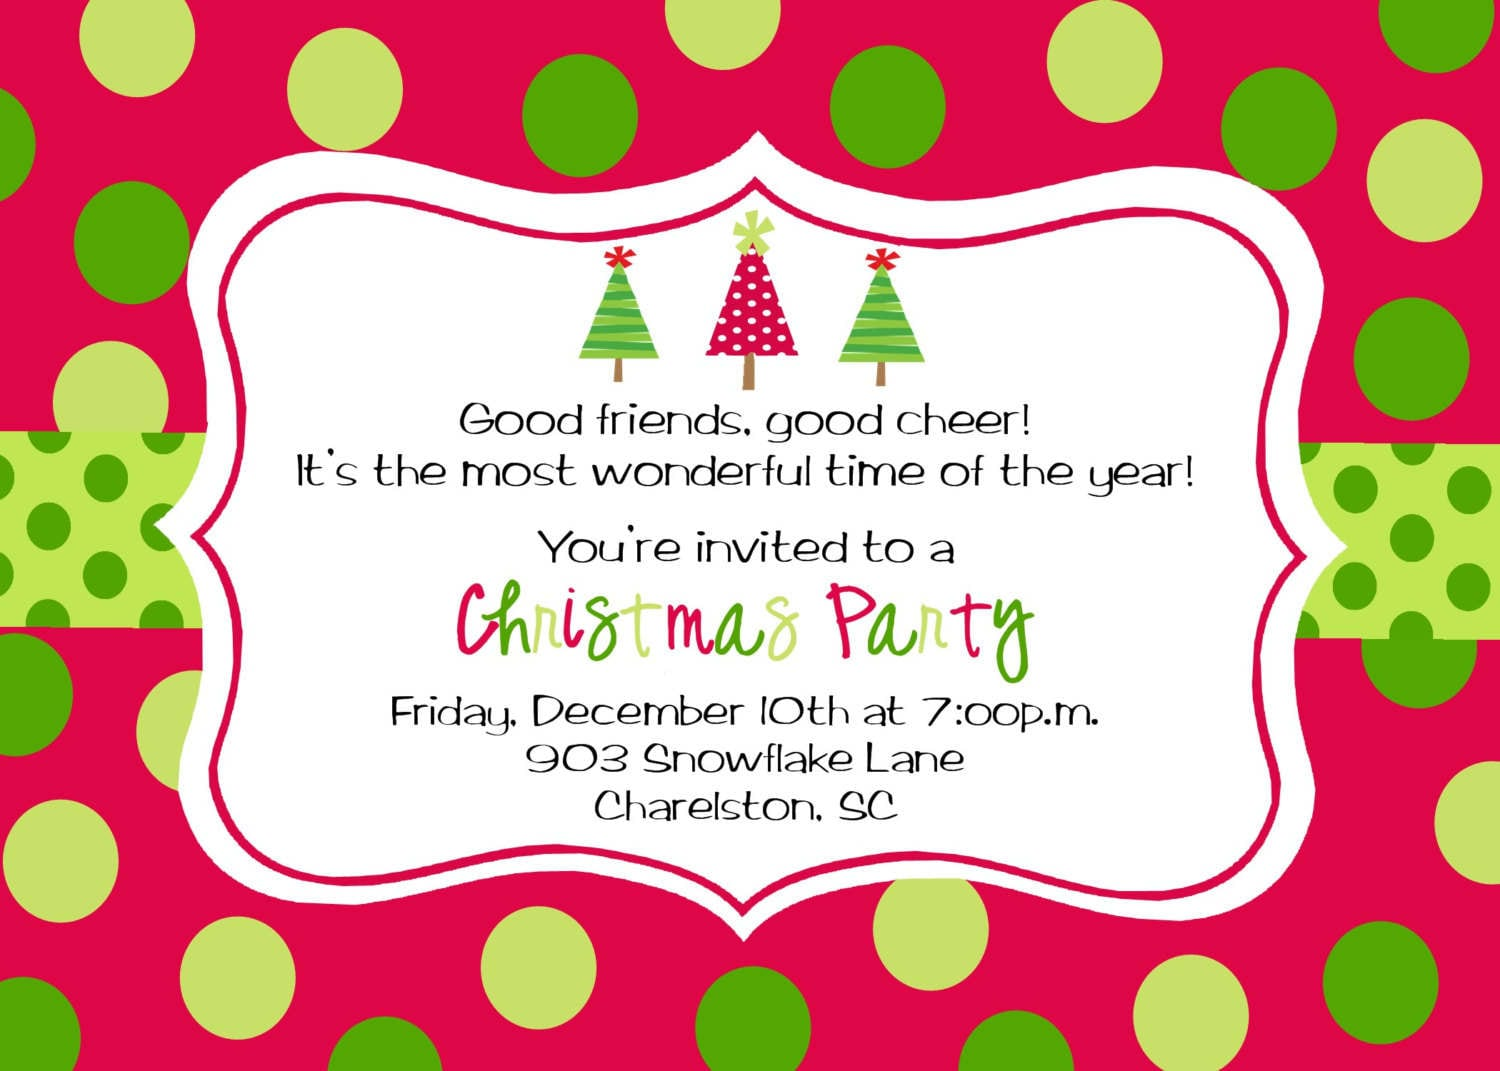 Sample Invitation For Christmas Party - Mickey Mouse Invitations ...